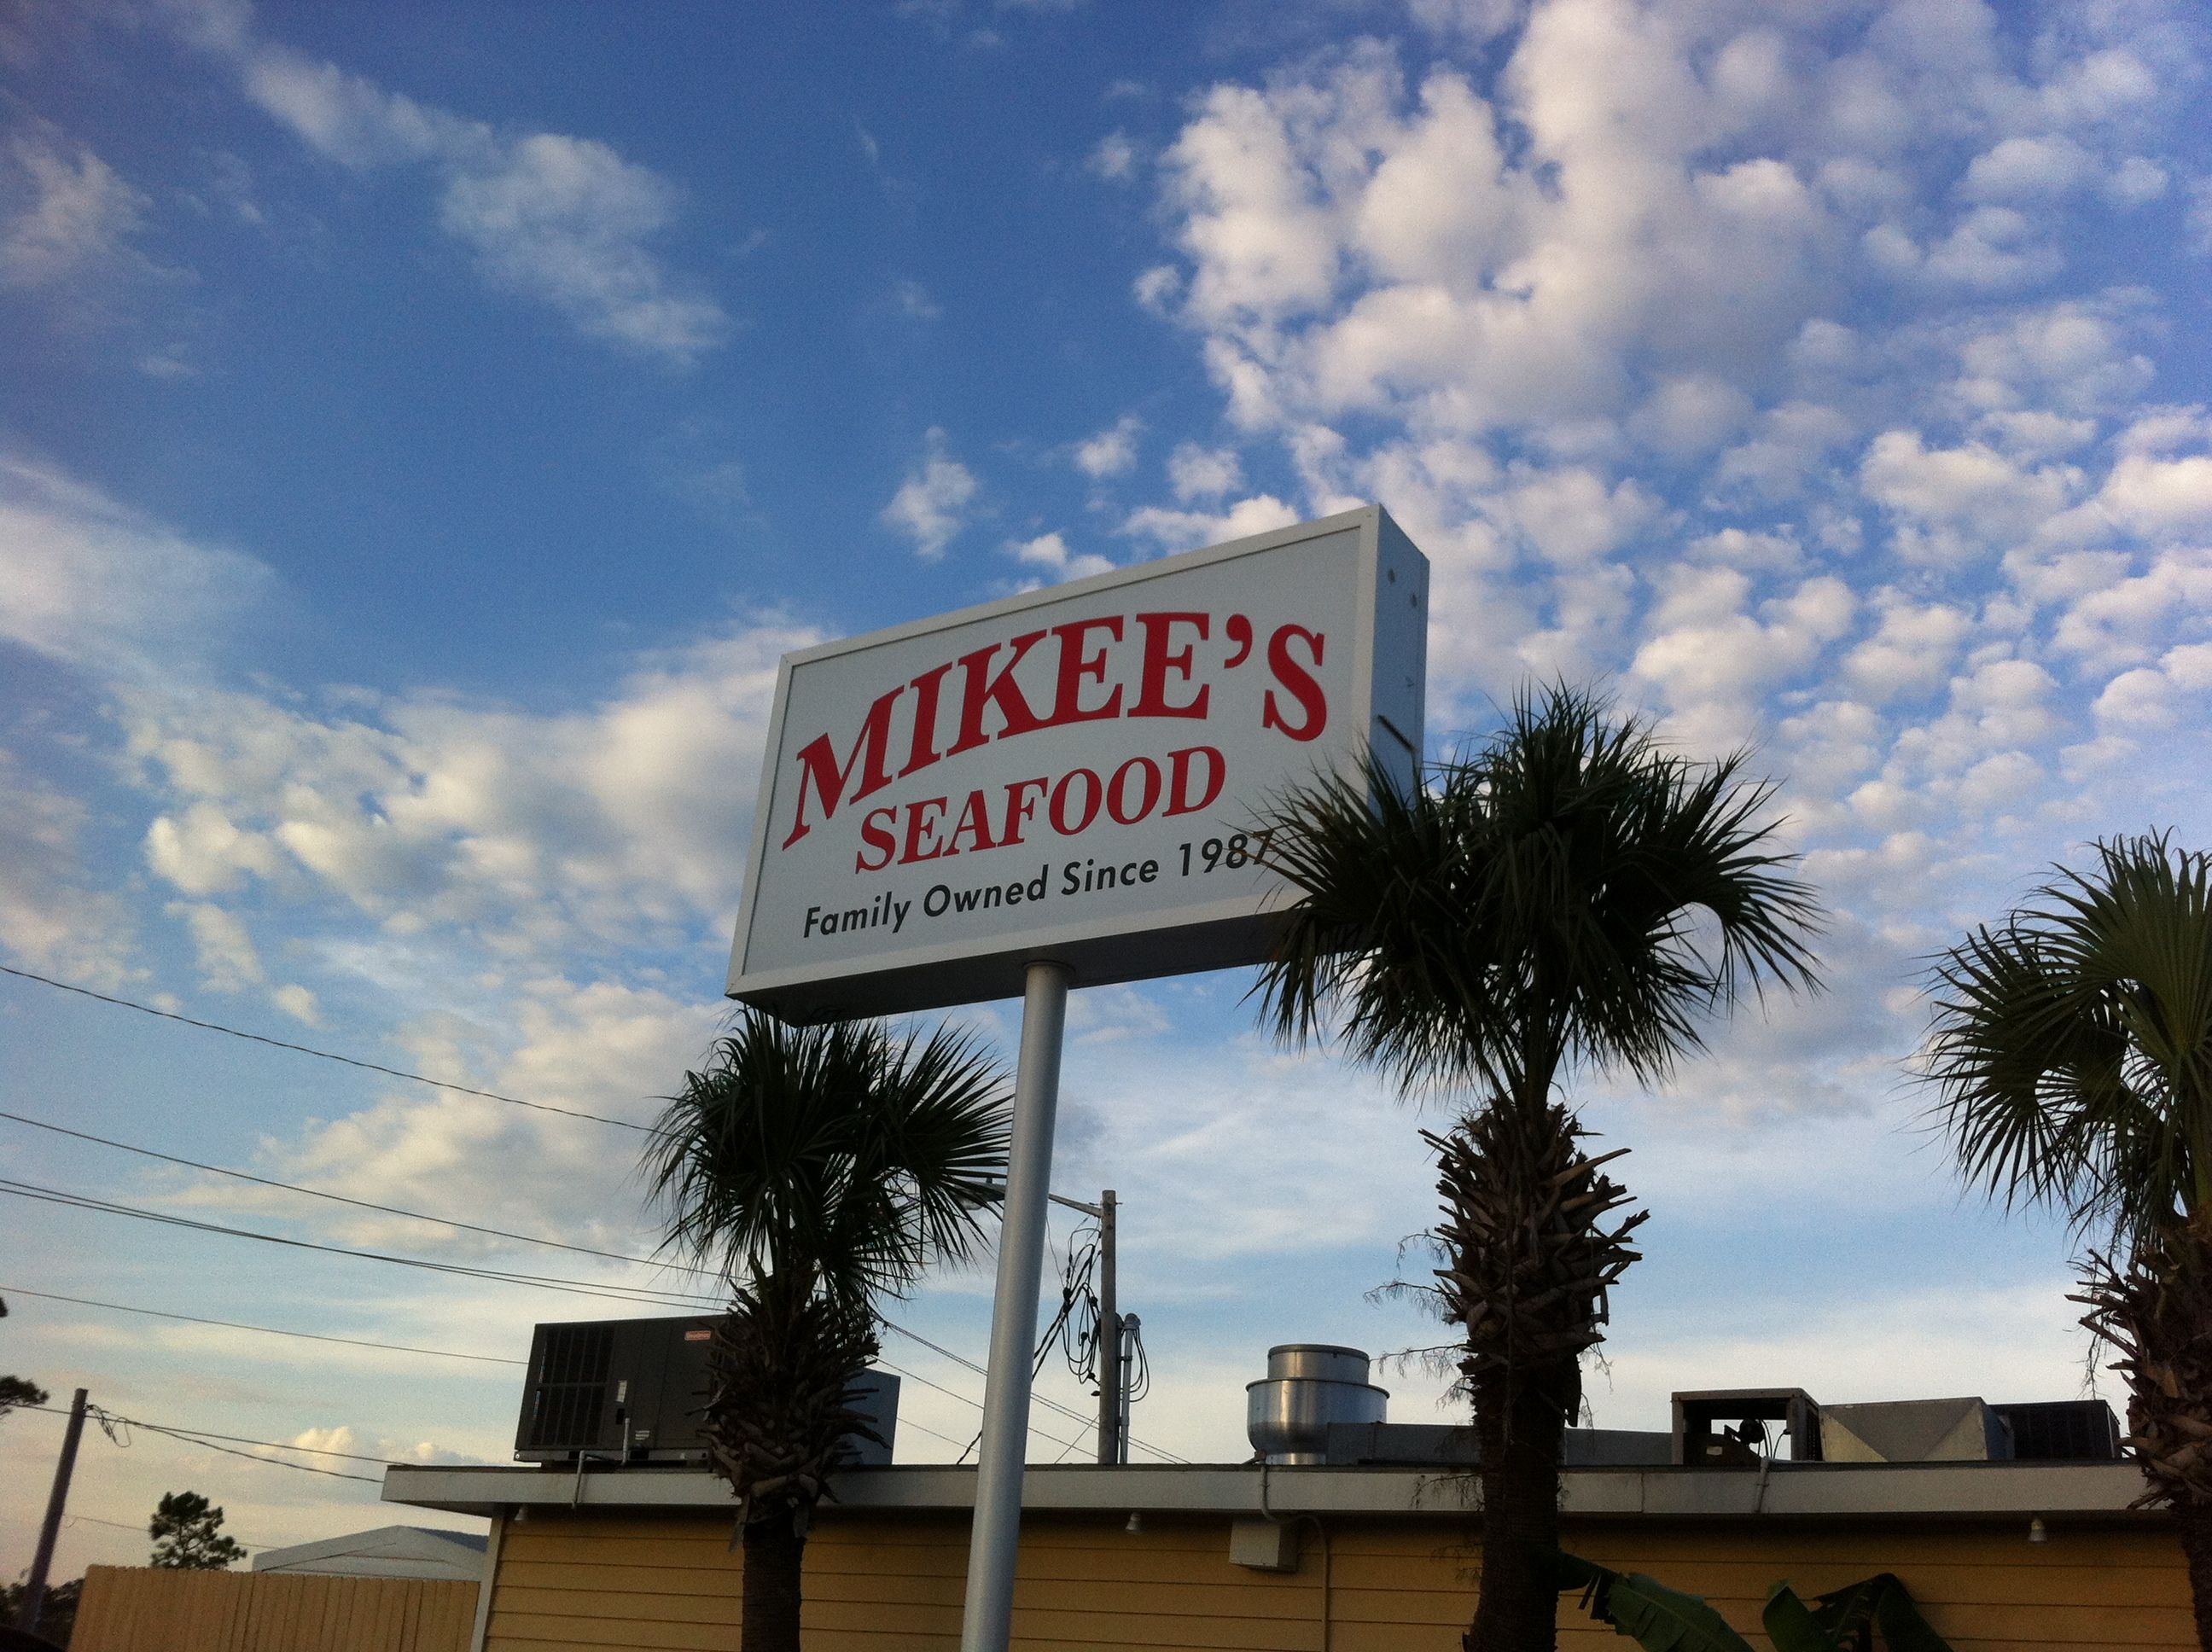 Mikee's Seafood Restaurant- awesome family friendly place we have visited on vacation in #gulfshores #alabama the service was awesome & food amazing! Definitely recommend dining here if you're ever in the area!